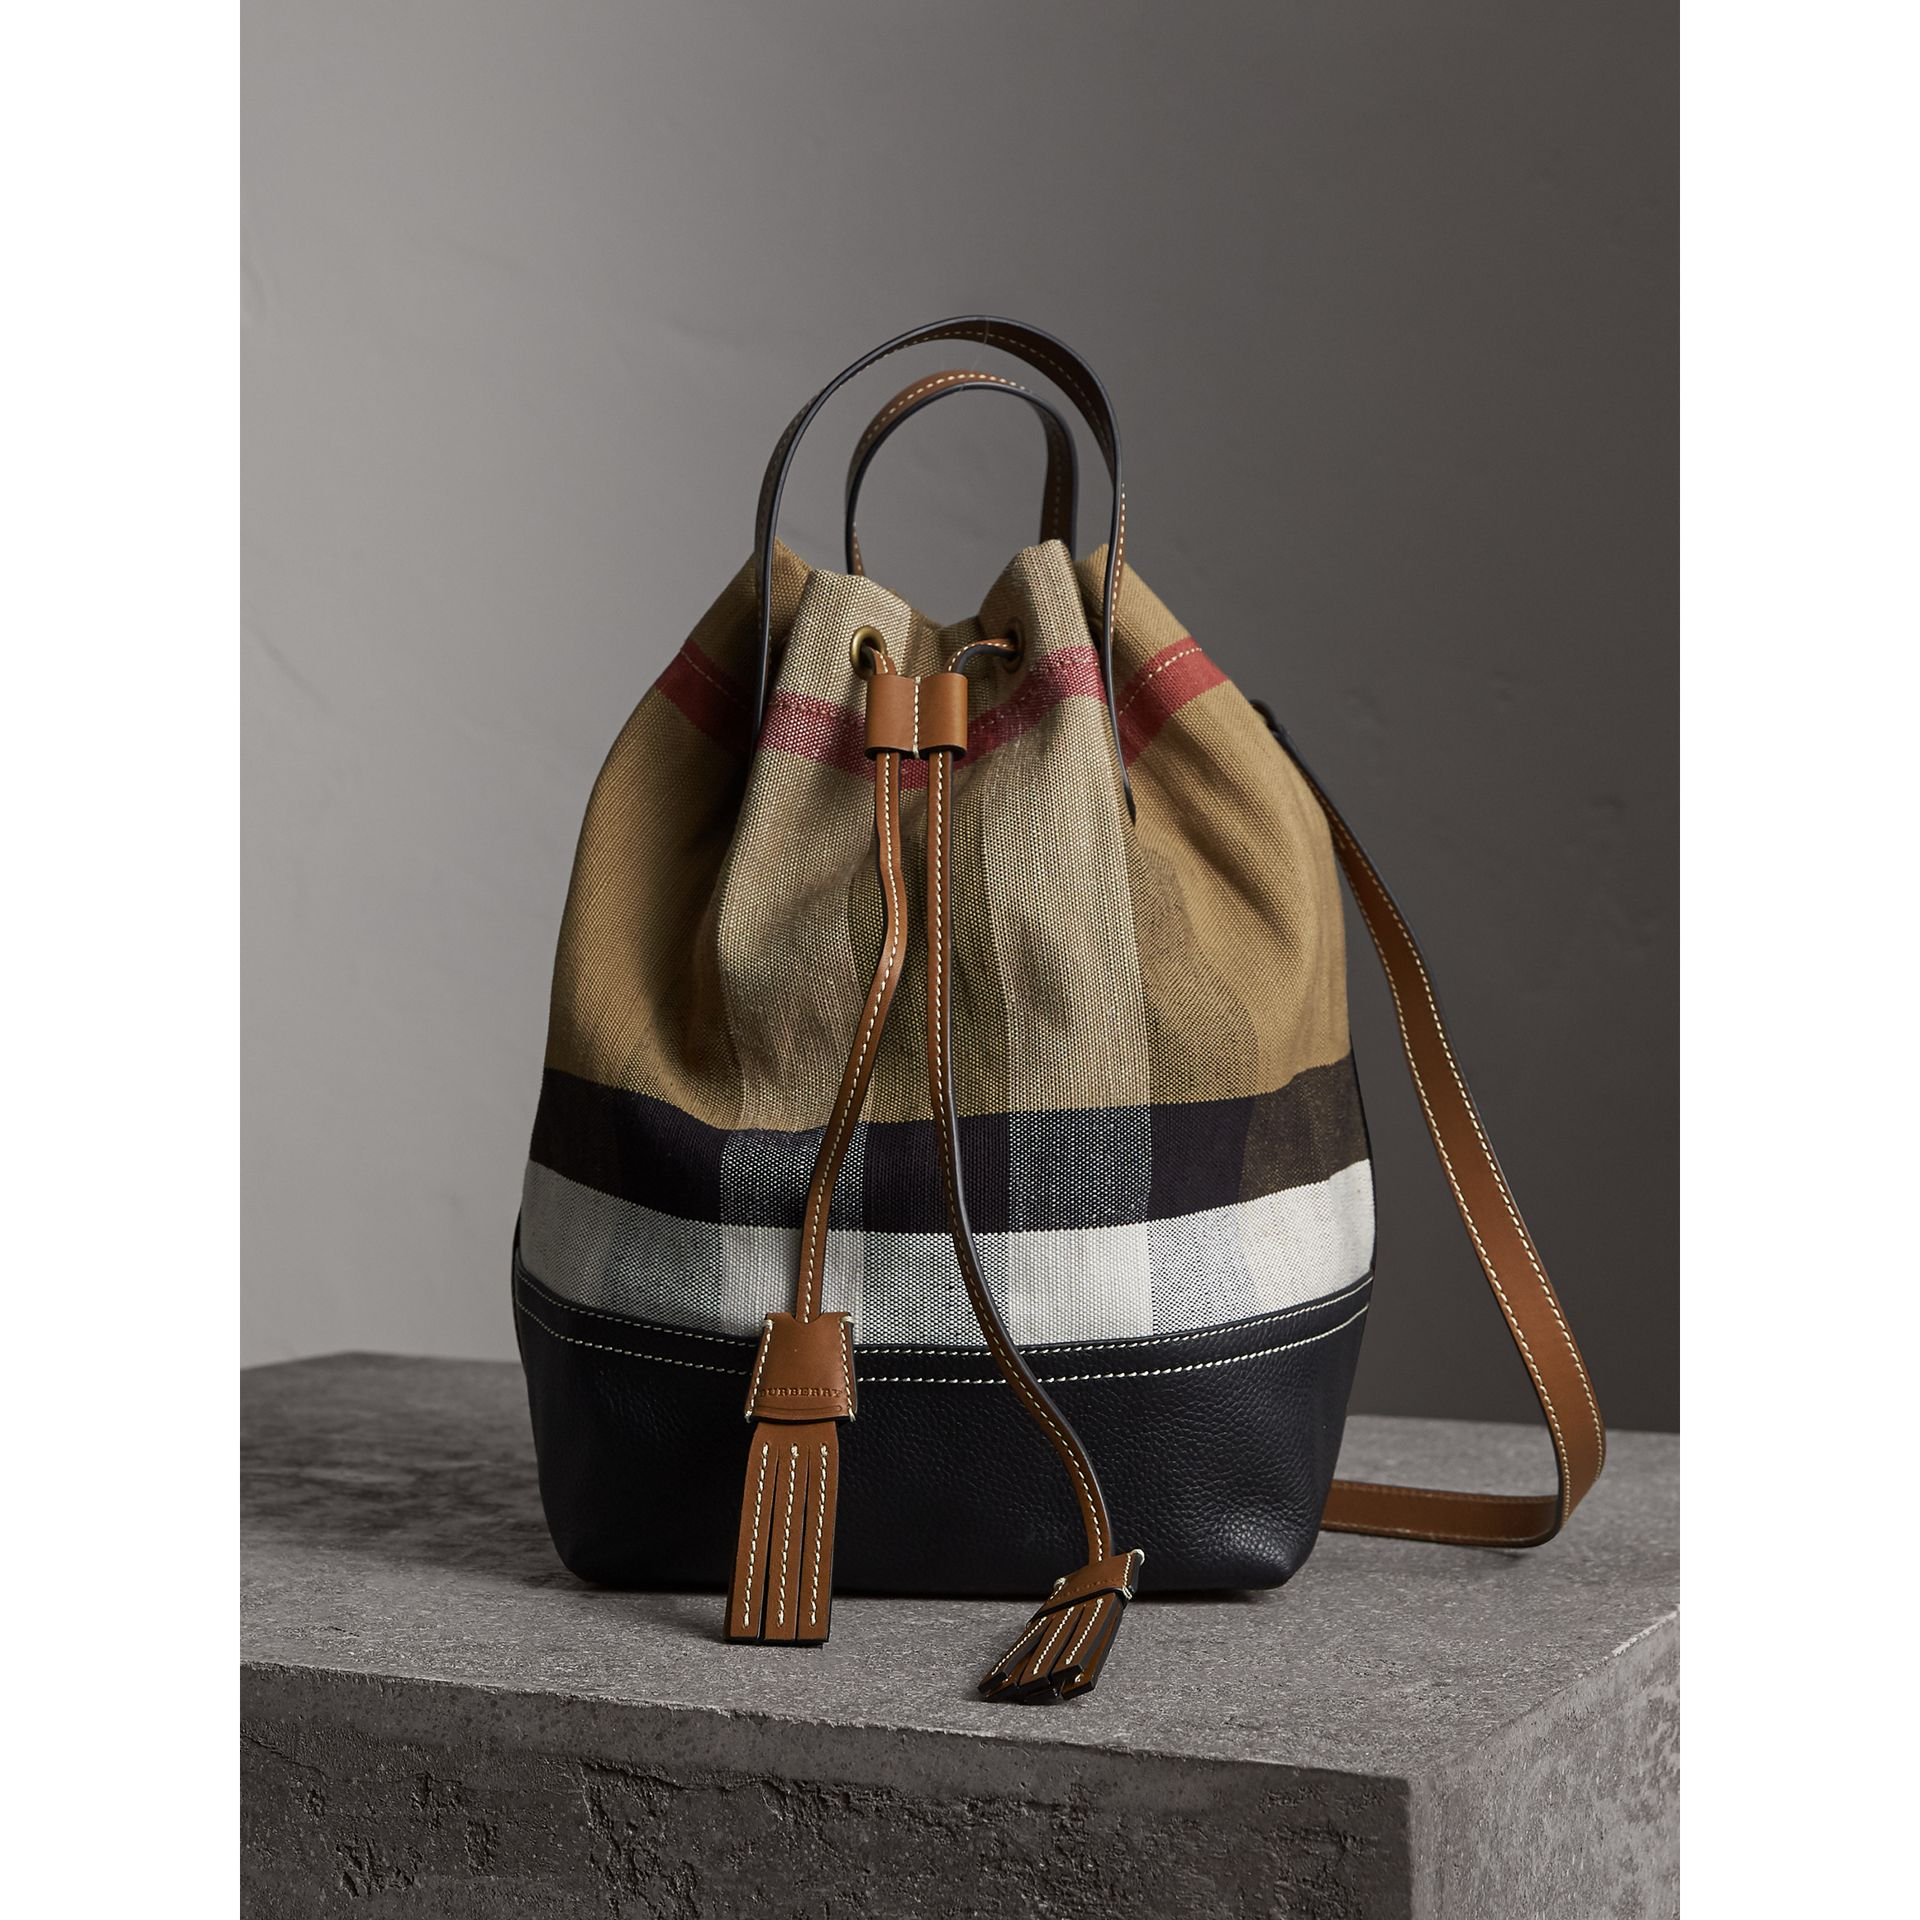 Medium Canvas Check Bucket Bag in Tan - Women | Burberry Hong Kong - gallery image 1